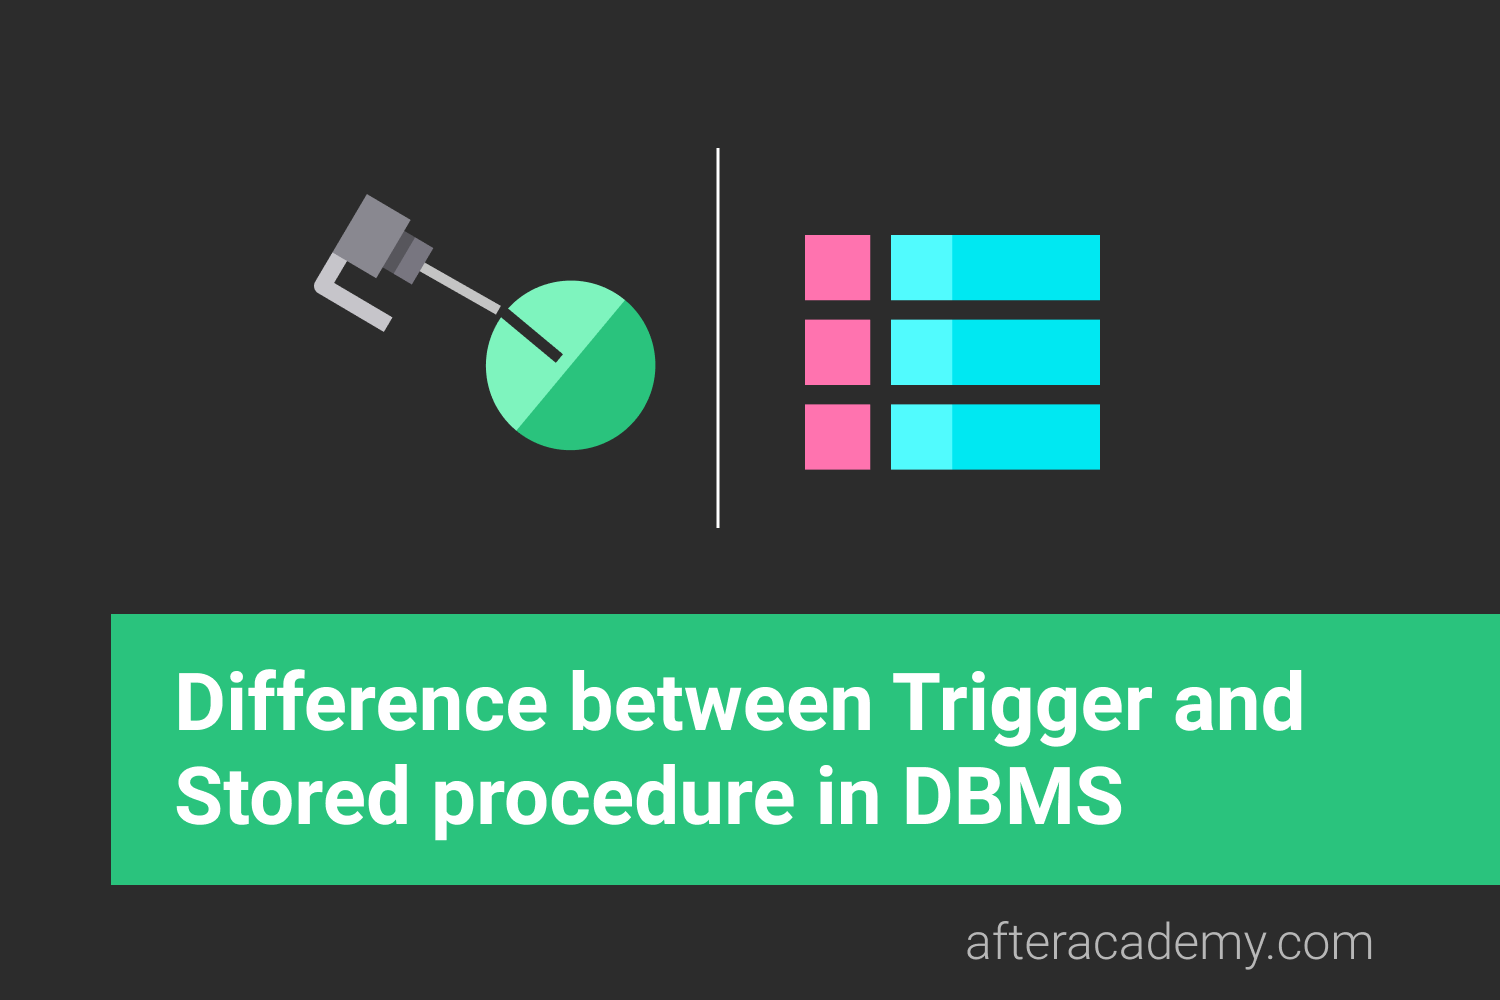 Difference between Trigger and Stored procedure in DBMS